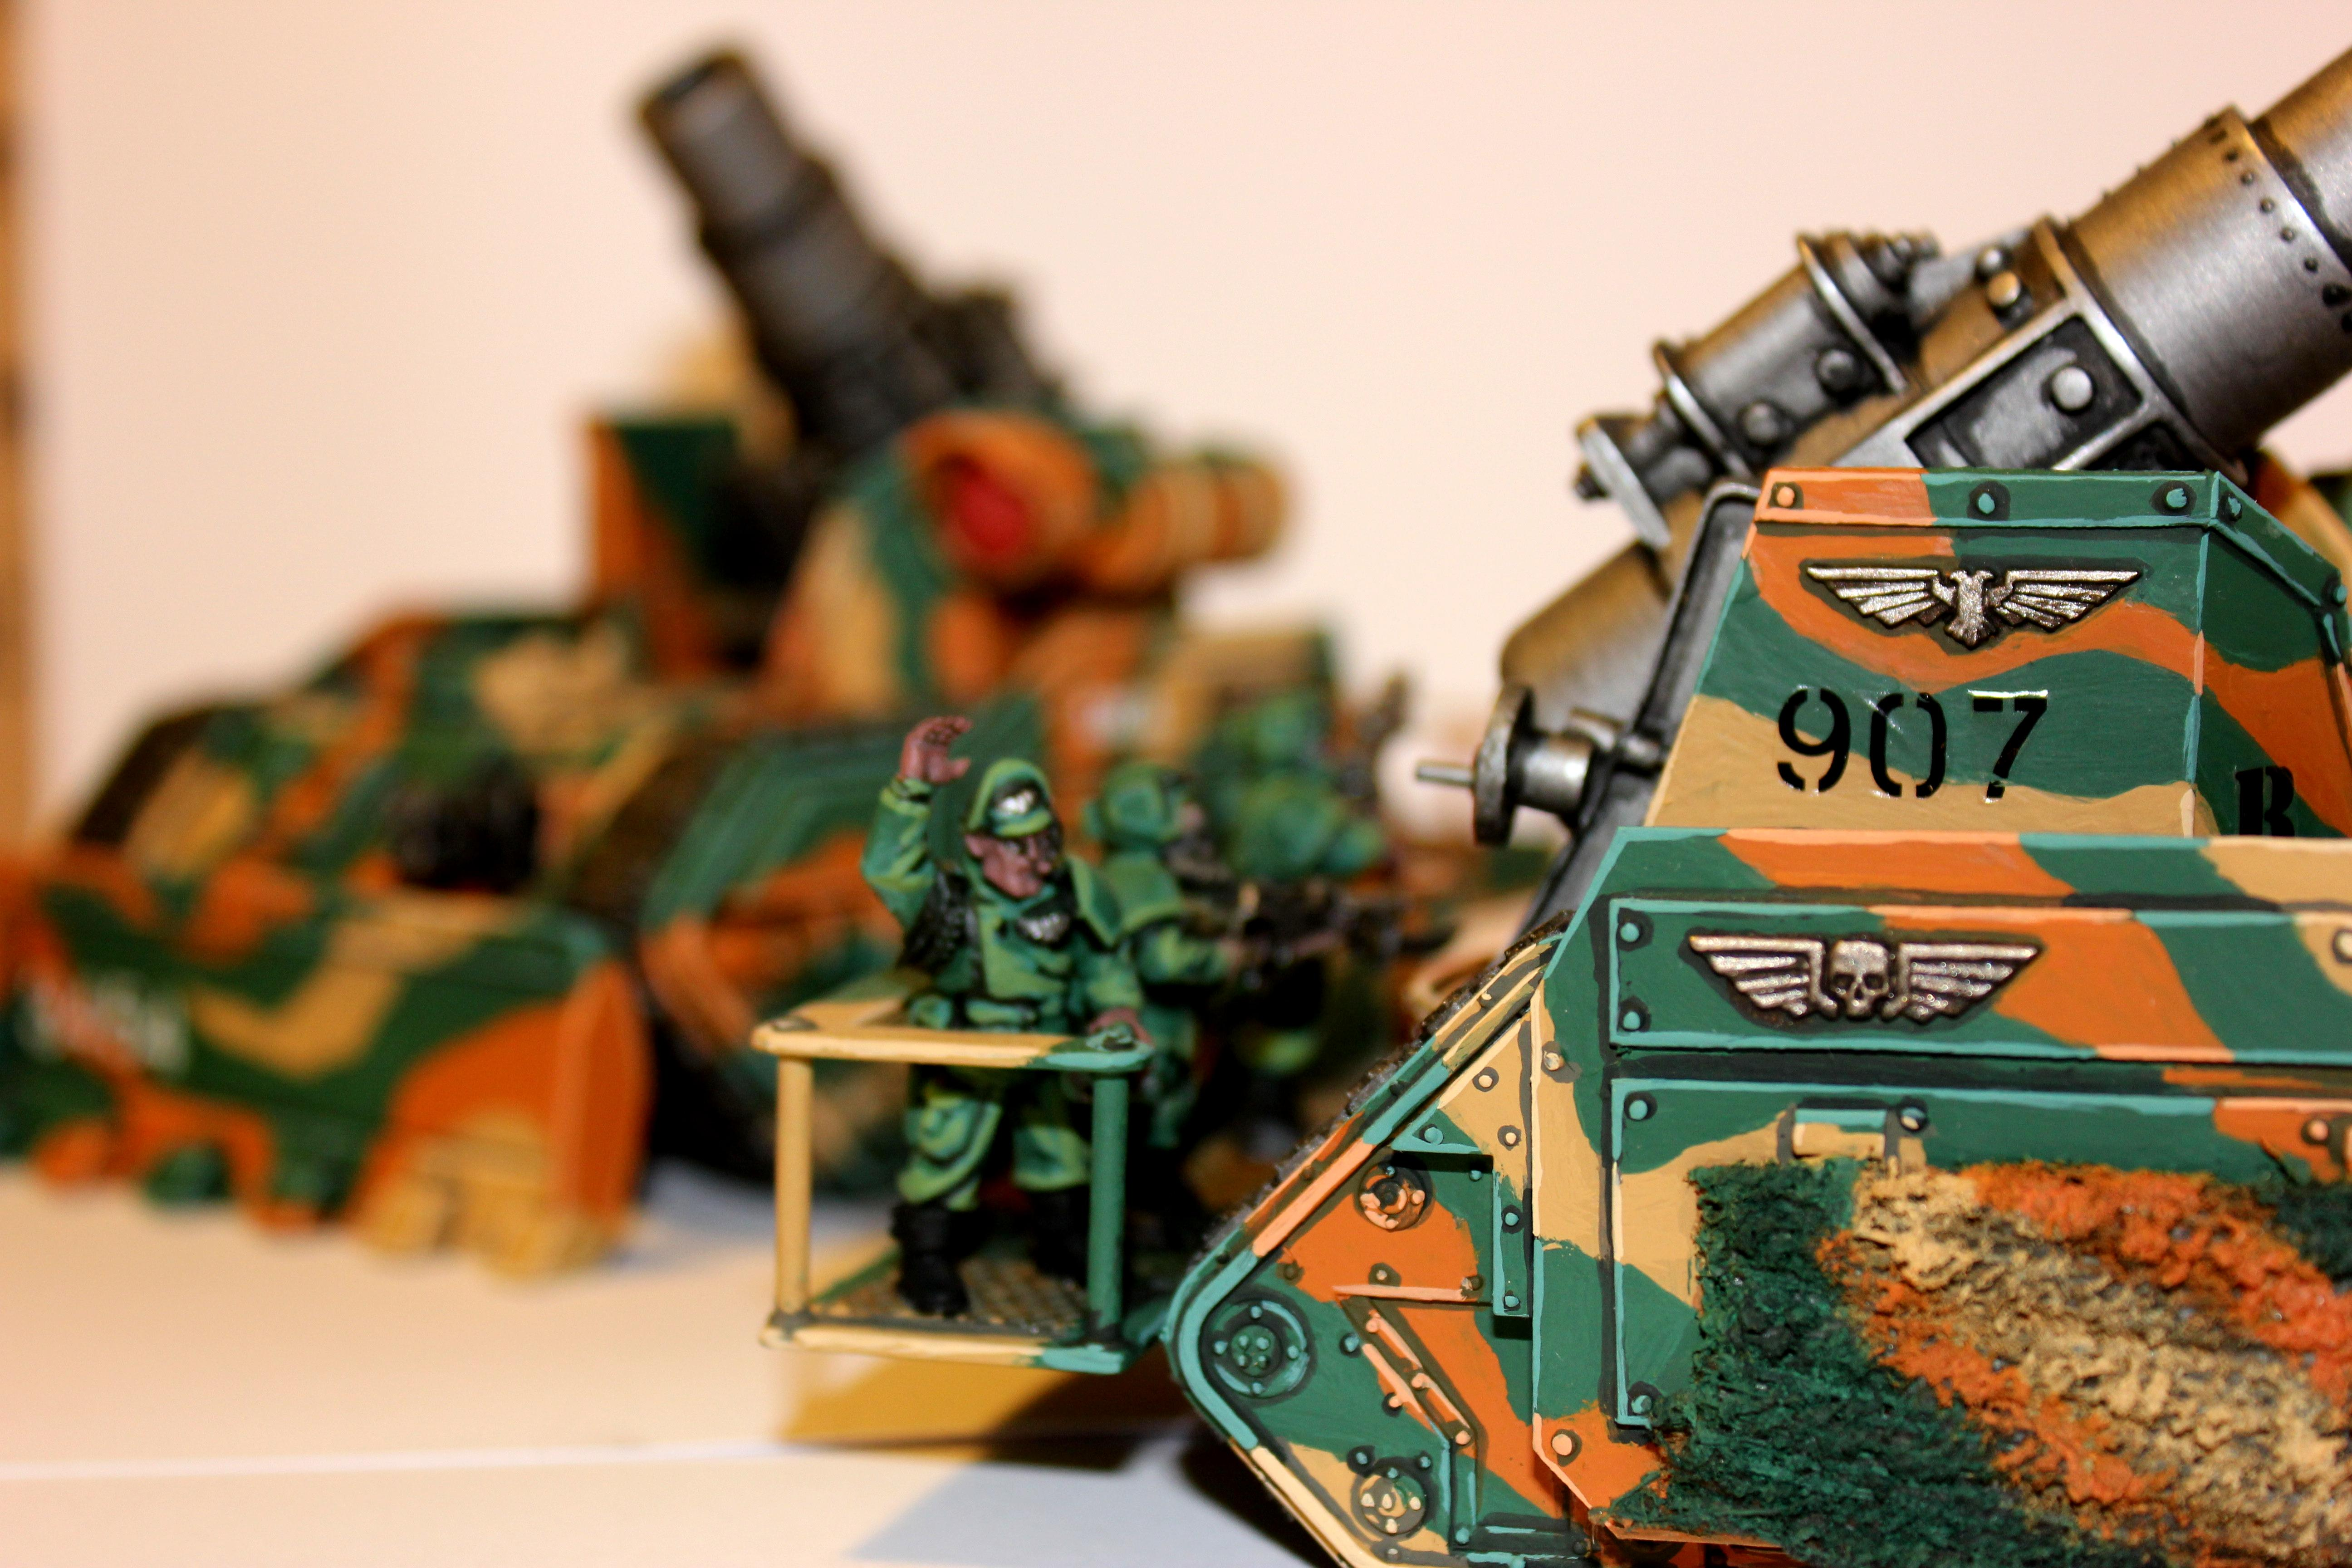 Artillery, Astra Militarum, Basilisk, Conversion, Demolisher, Greif, Imperial Armee, Imperial Guard, Imperiale Armee, Kolossus, Lasercannon, Leman Russ, Medusa, Multilase, Panzer, Tank, Warhammer 40,000